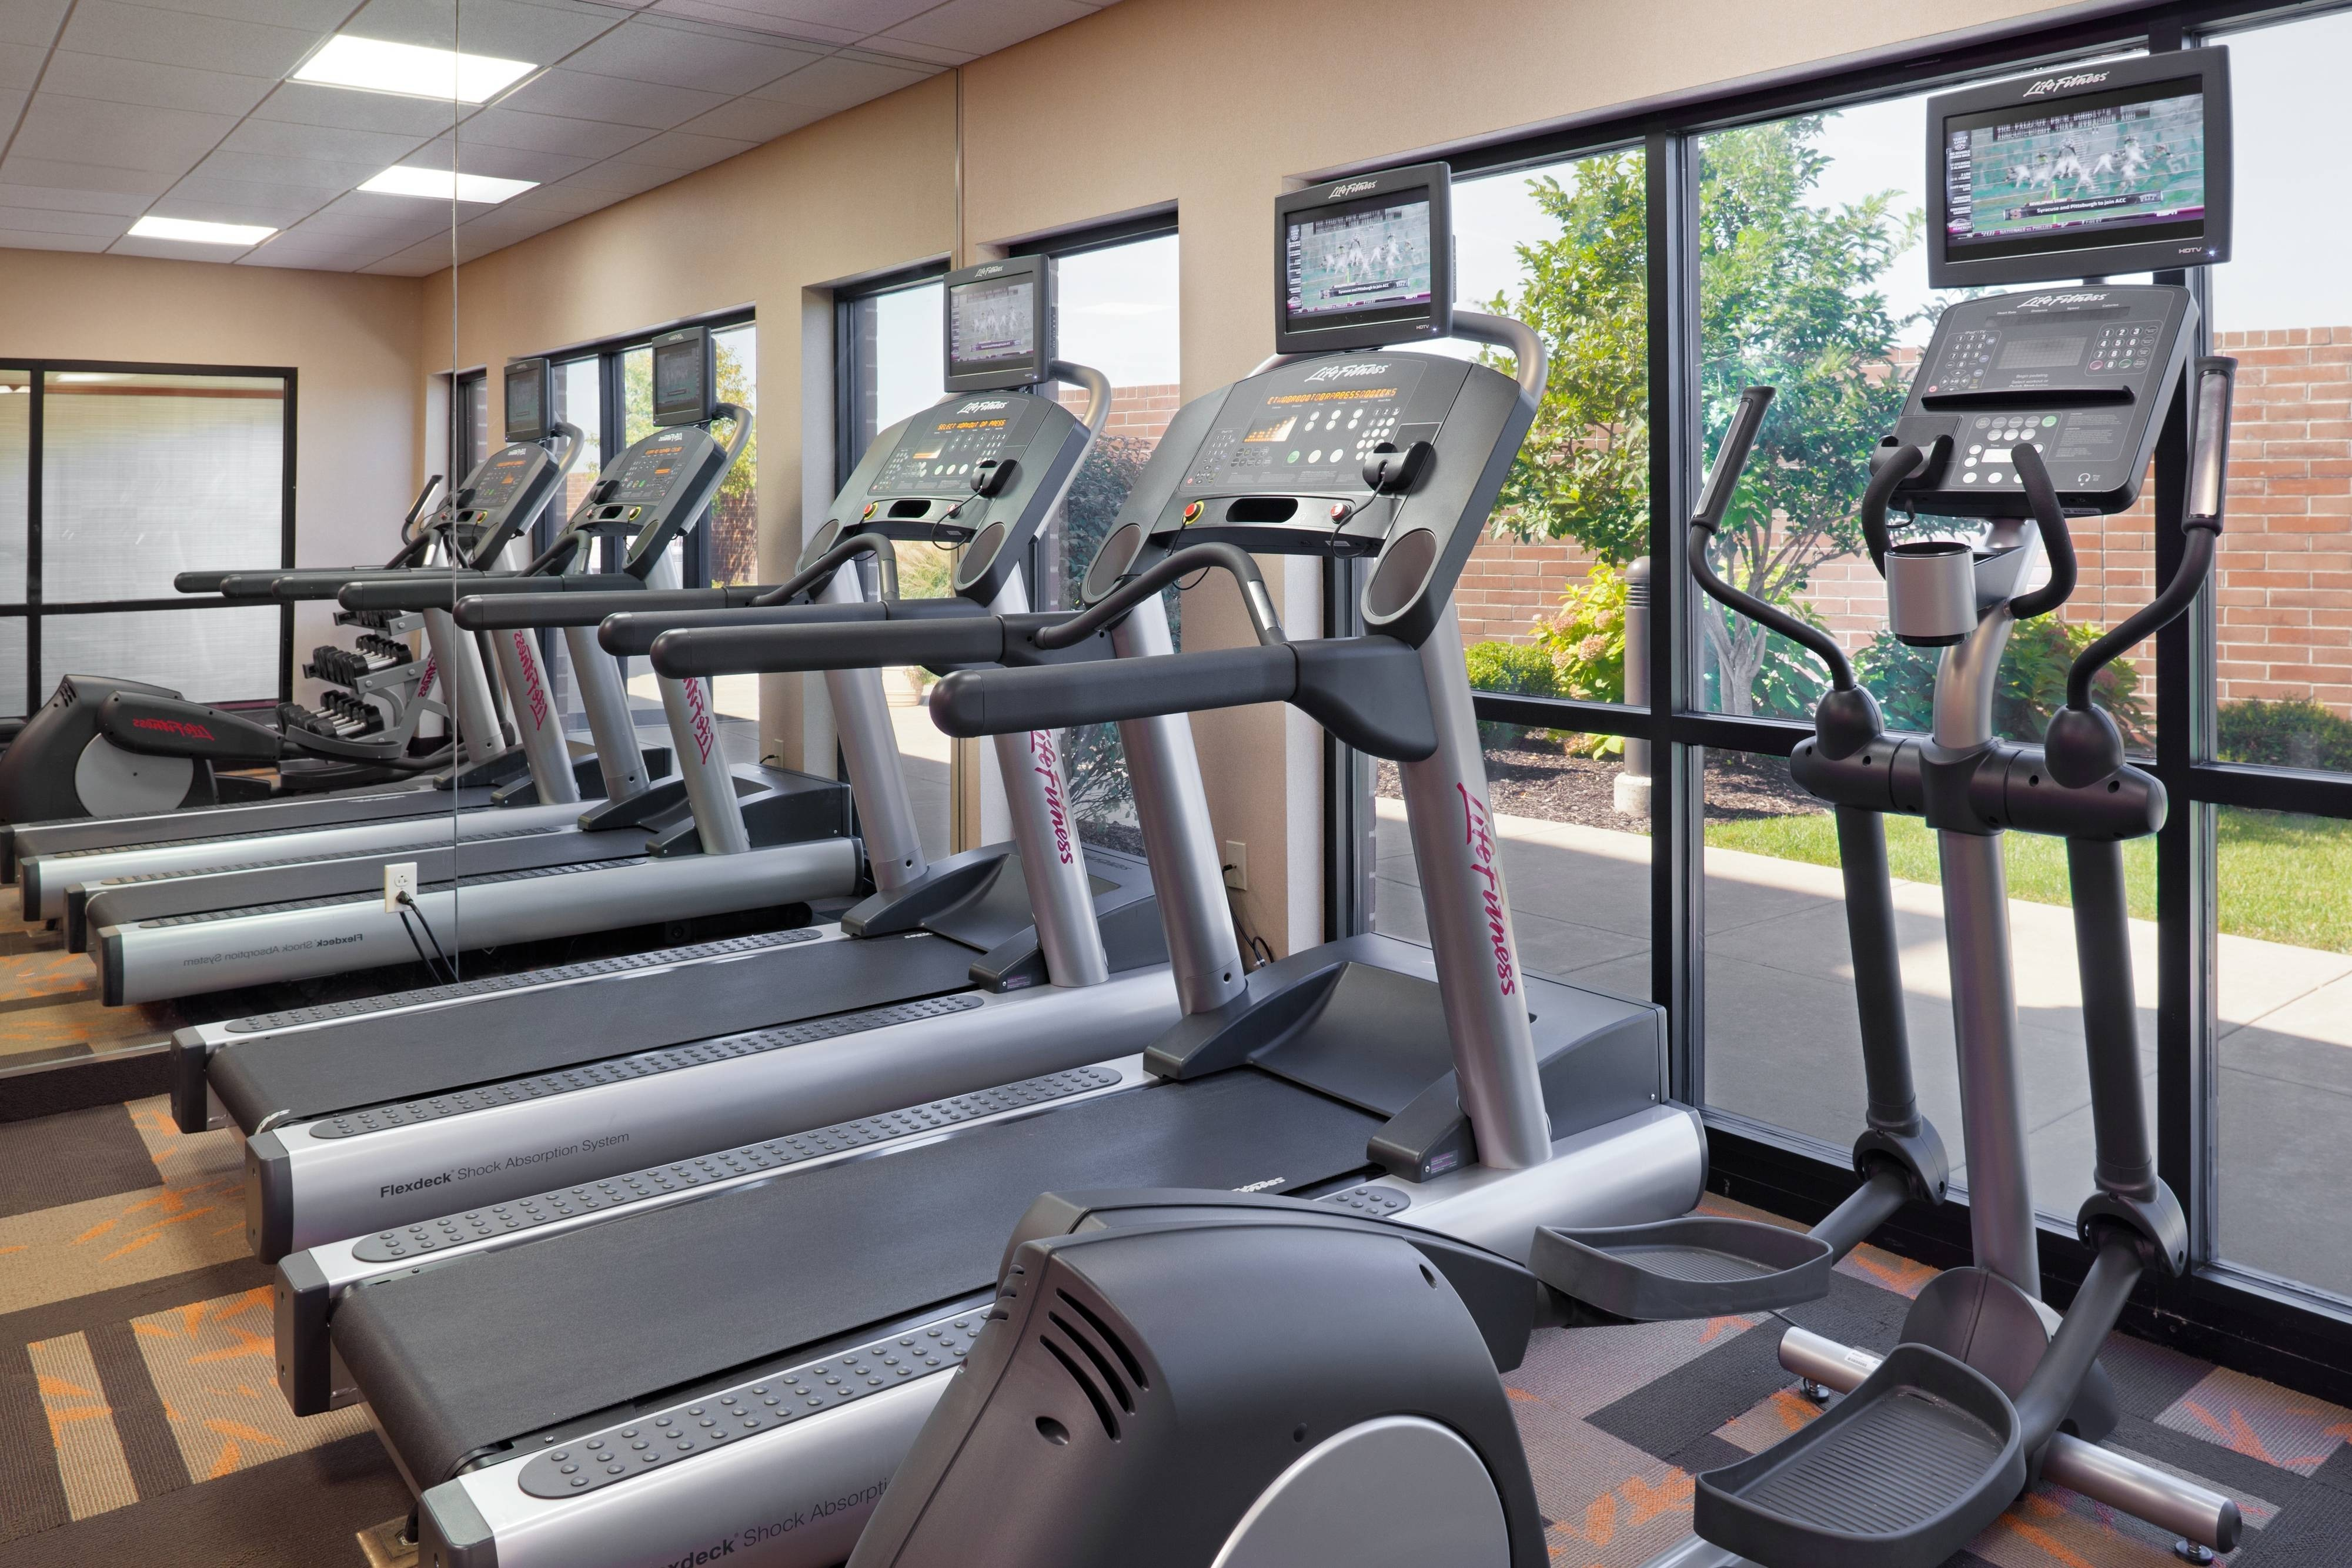 Fitness center in Columbia hotel